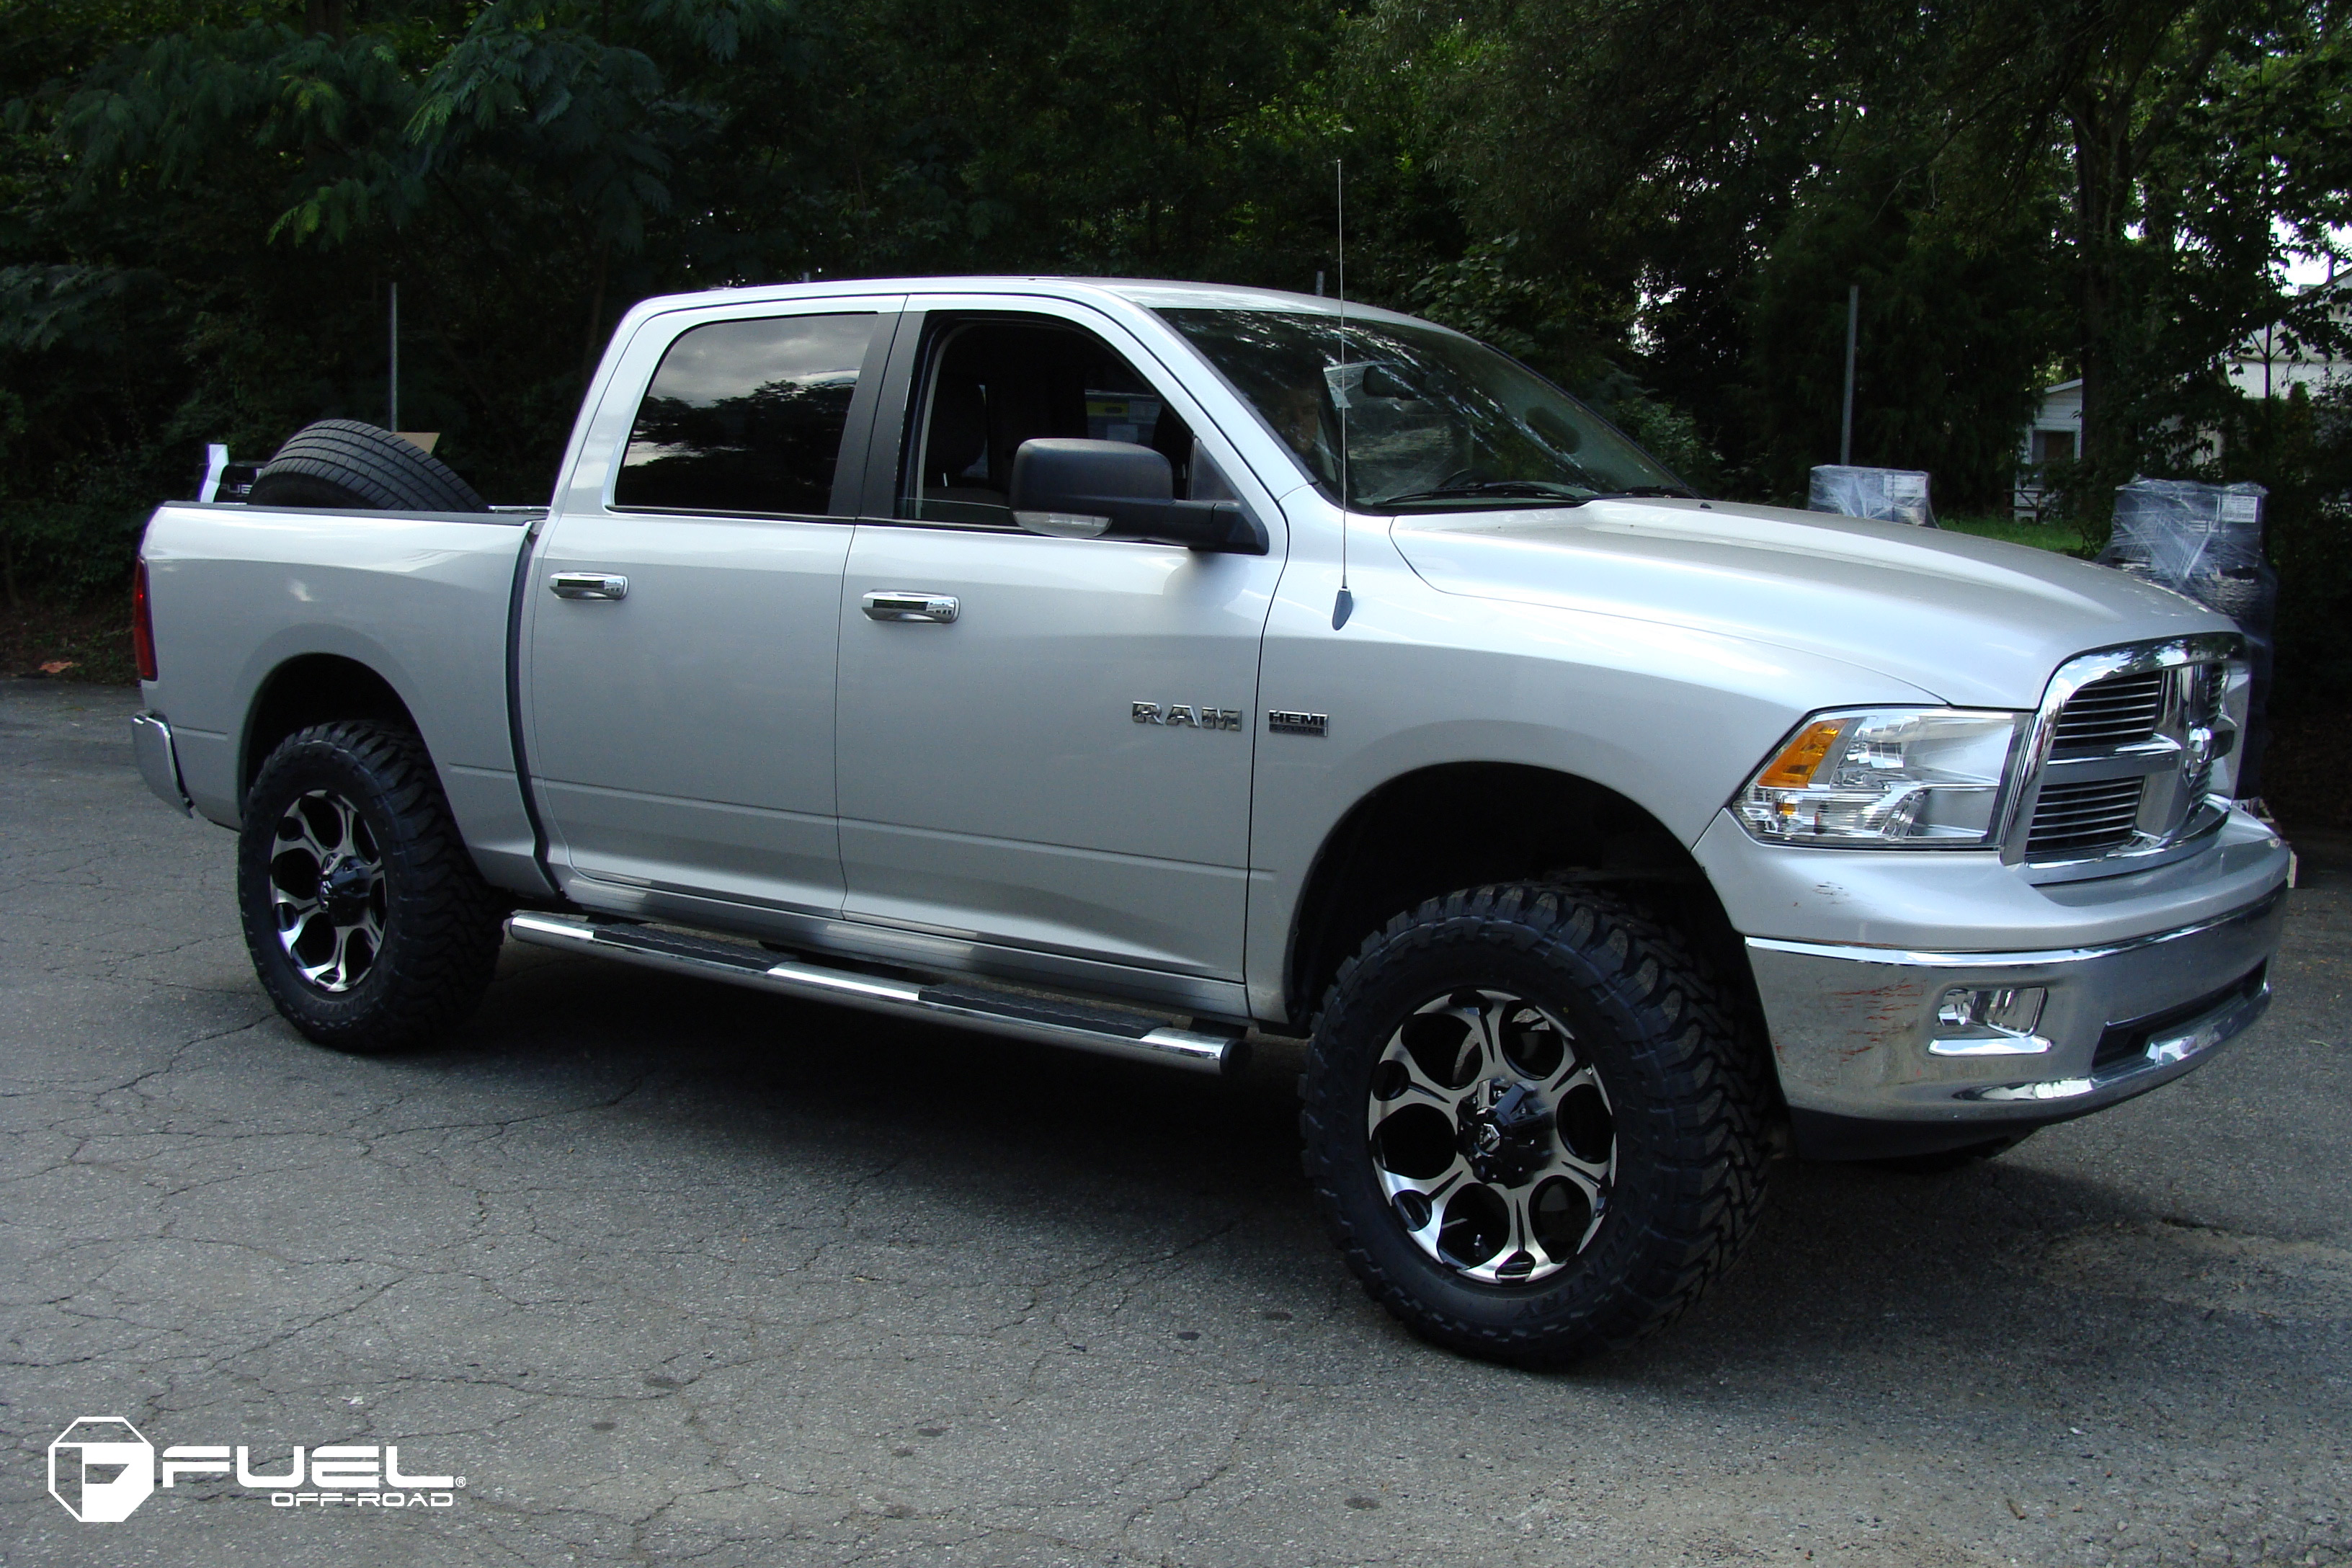 Dodge Ram 1500 Wheels And Tires Packages >> 2012 Dodge Ram 1500 Wheels 2019 Ram 1500 Wheels Dodge Ram On